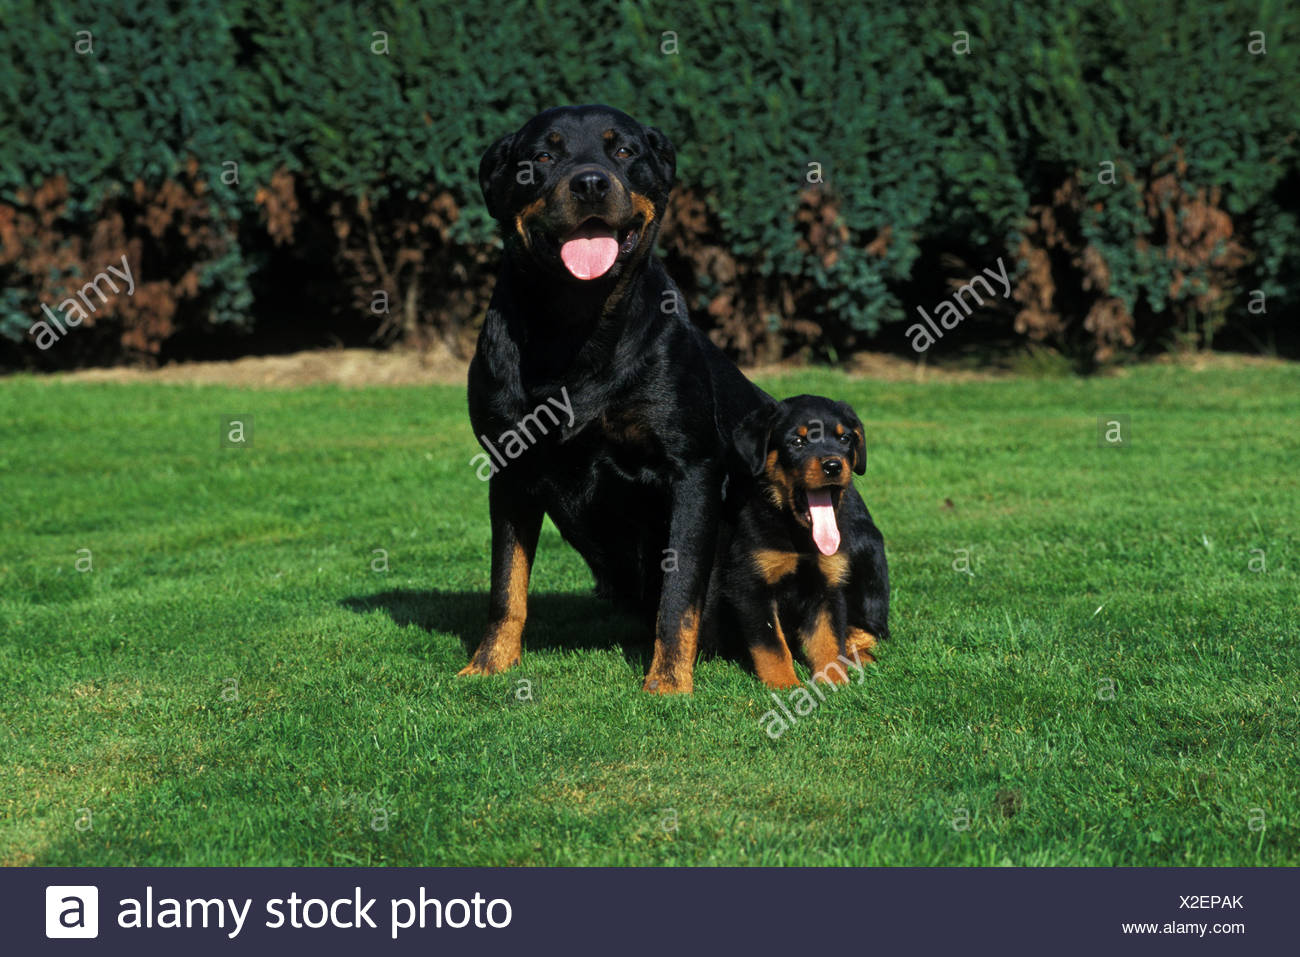 Dog Rottweiler Puppy Breed Outside Outdoors Outdoor Pet Young Baby